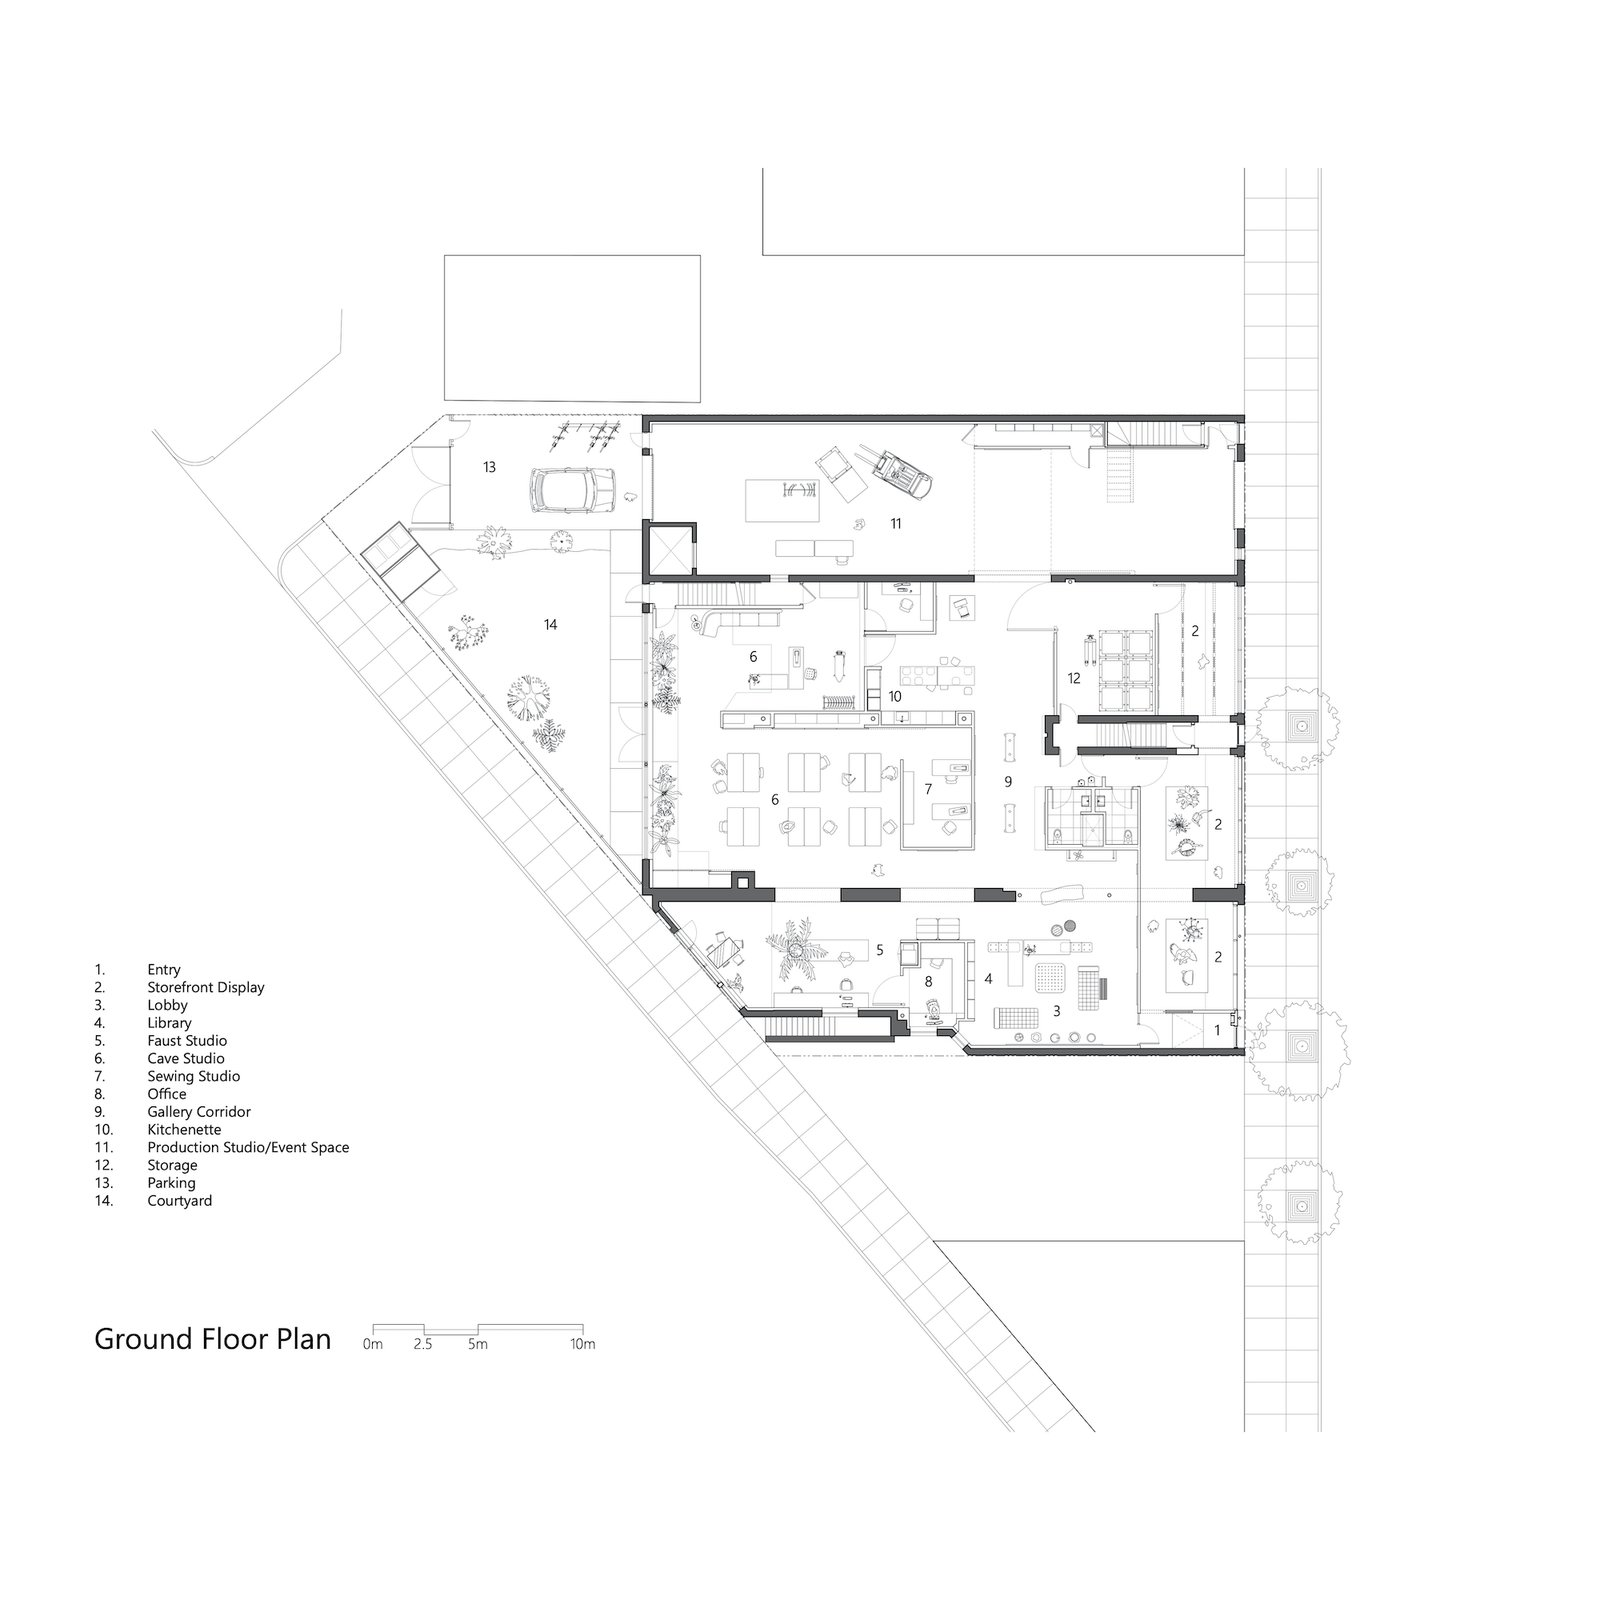 Ground-level floor plan of Facility by Carlo Parente Architecture